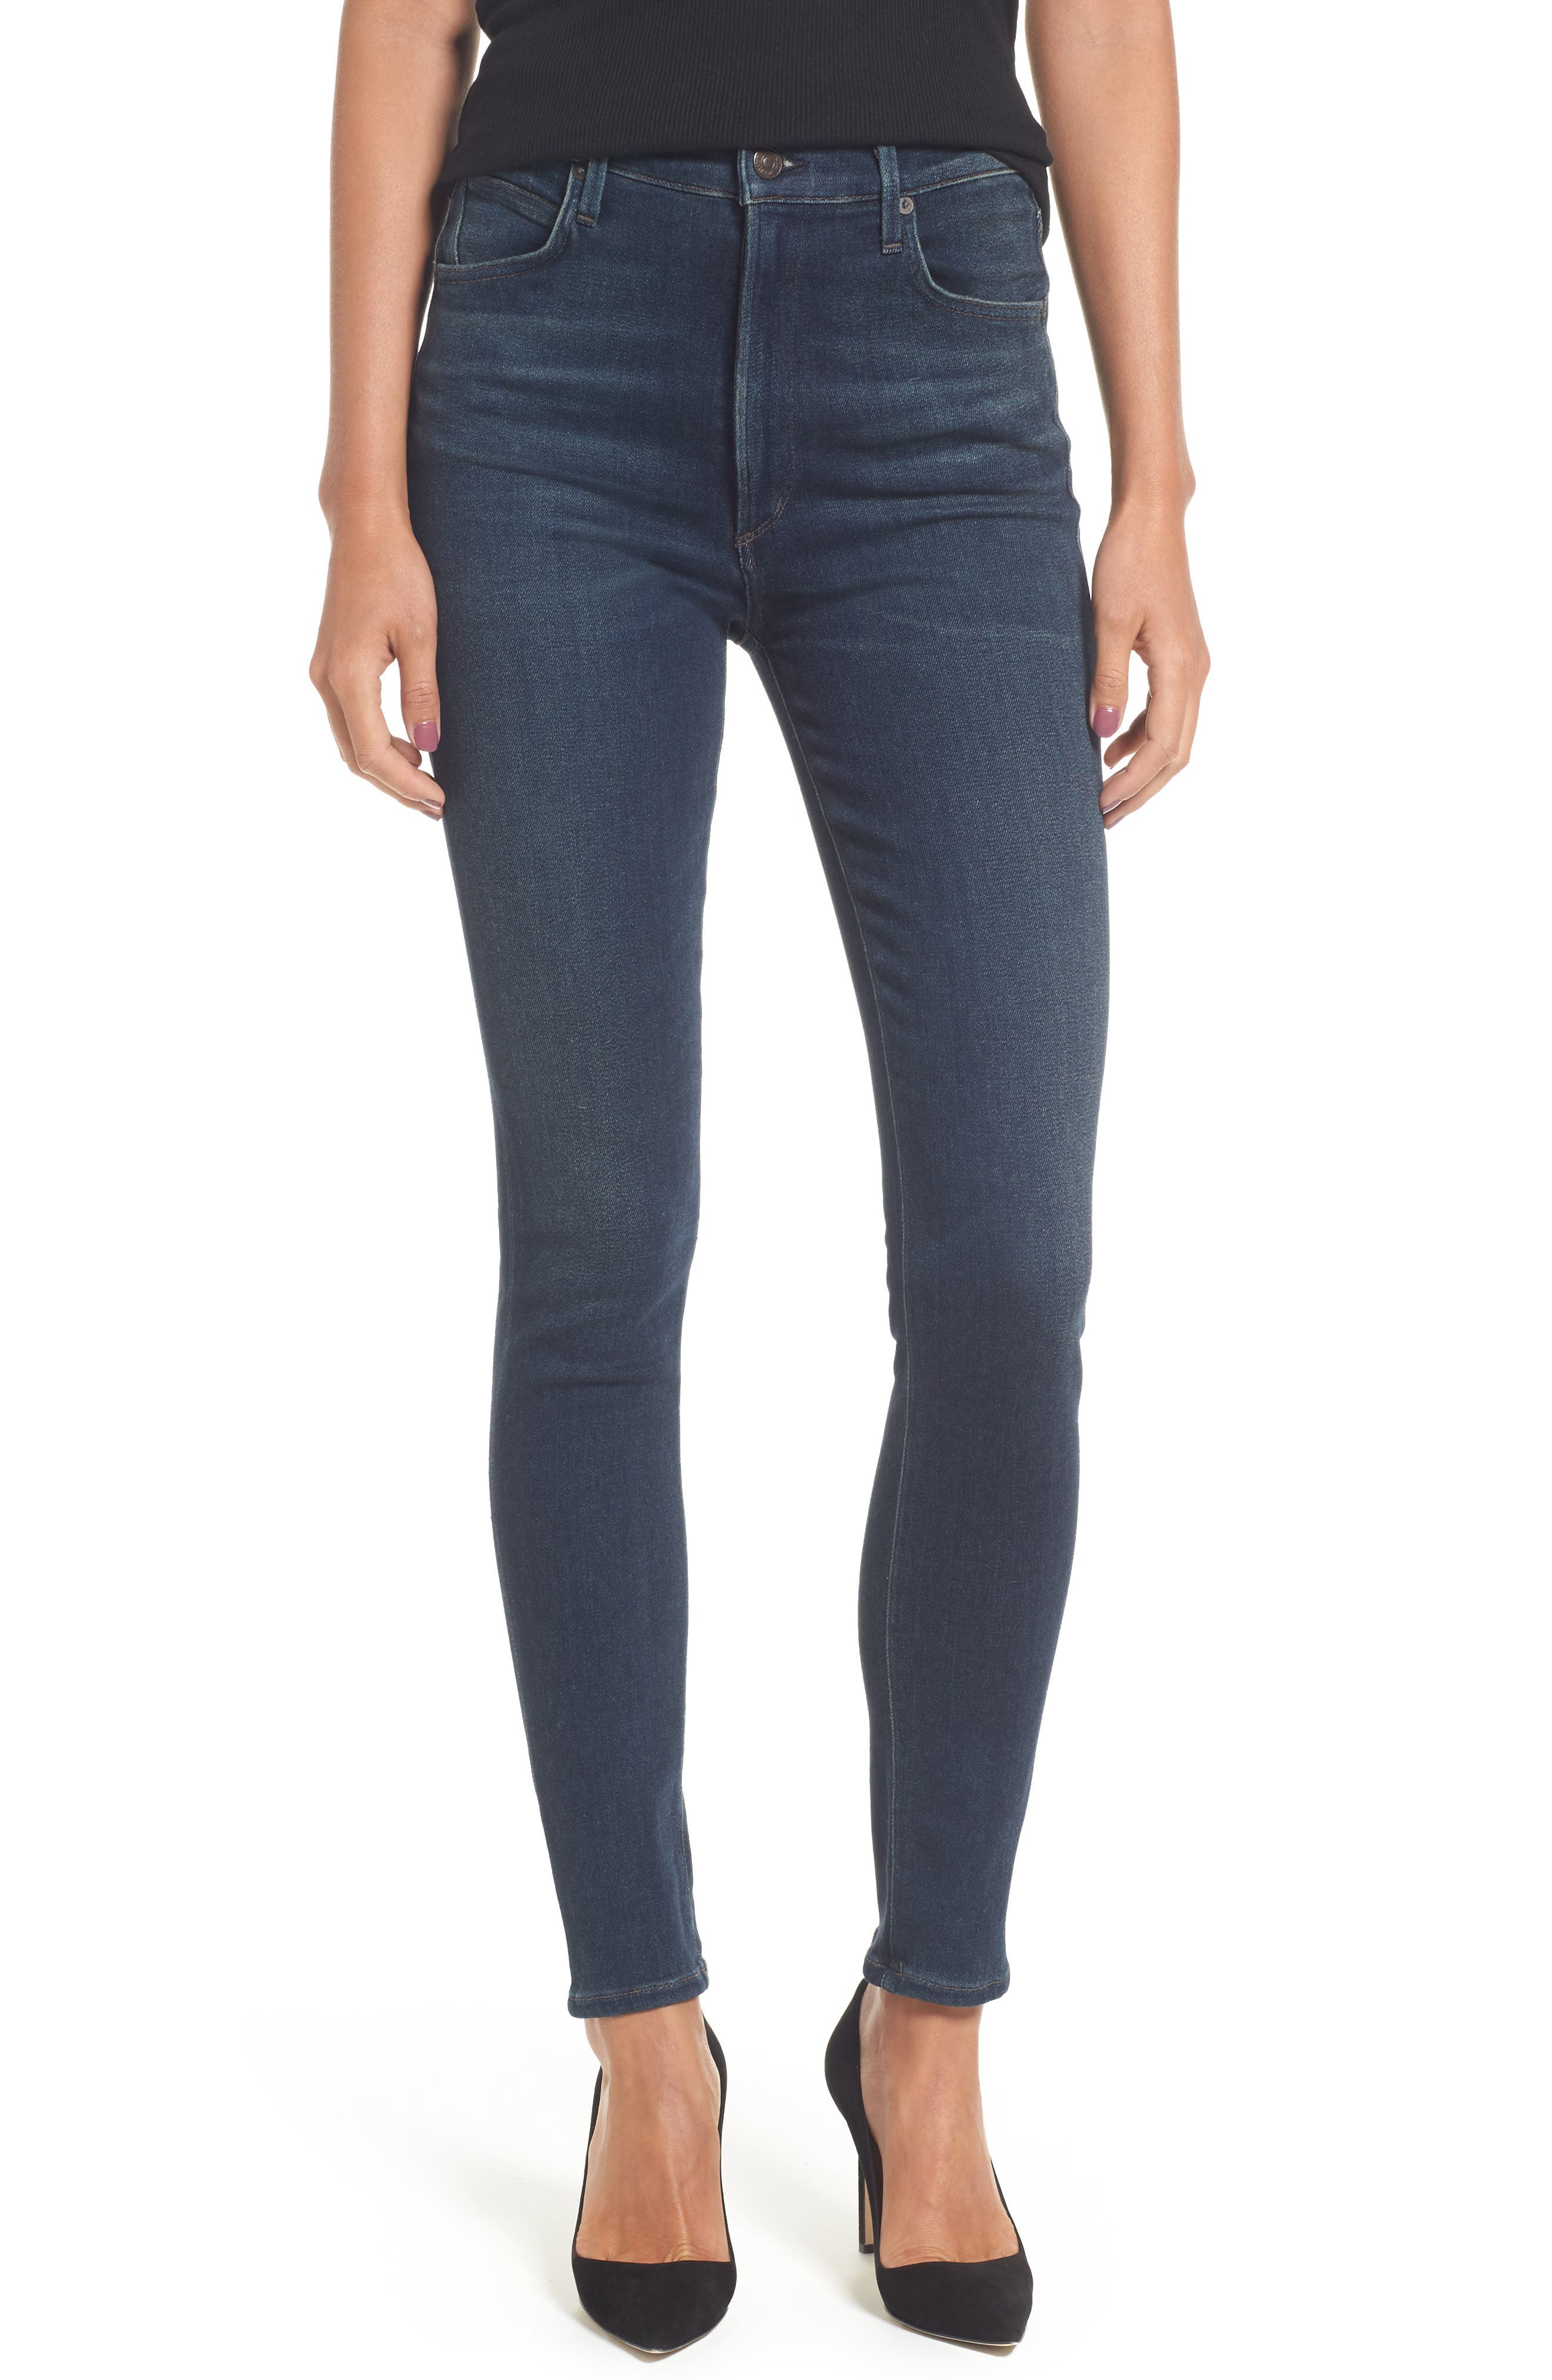 Main Image - Citizens of Humanity Chrissy High Waist Skinny Jeans (Haze)